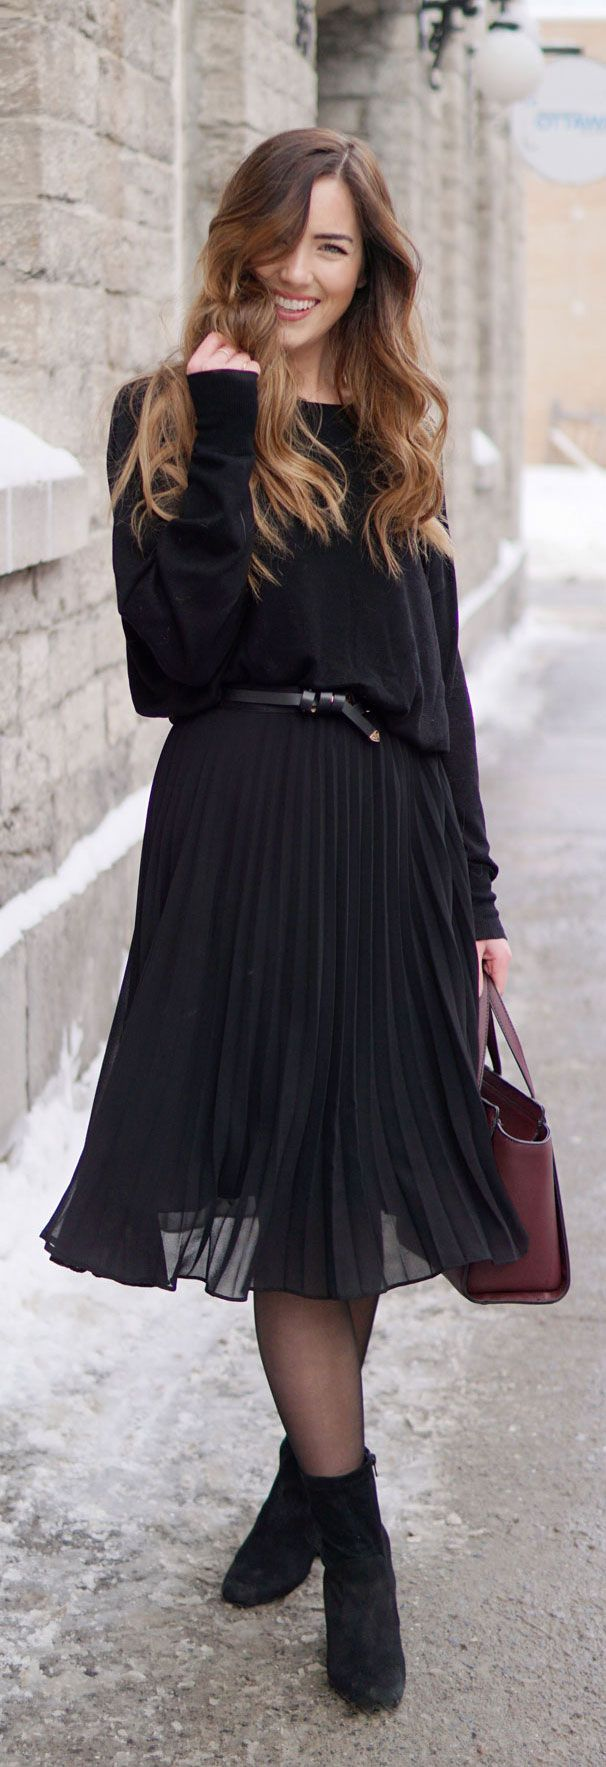 PLEATED BLACK MIDI SKIRT on sale for under $30 - unexpected way to wear a feminine skirt: slouchy black sweater and sock booties - all on sale!! #fashion #winter #black #fashionblog Marie's Bazaar